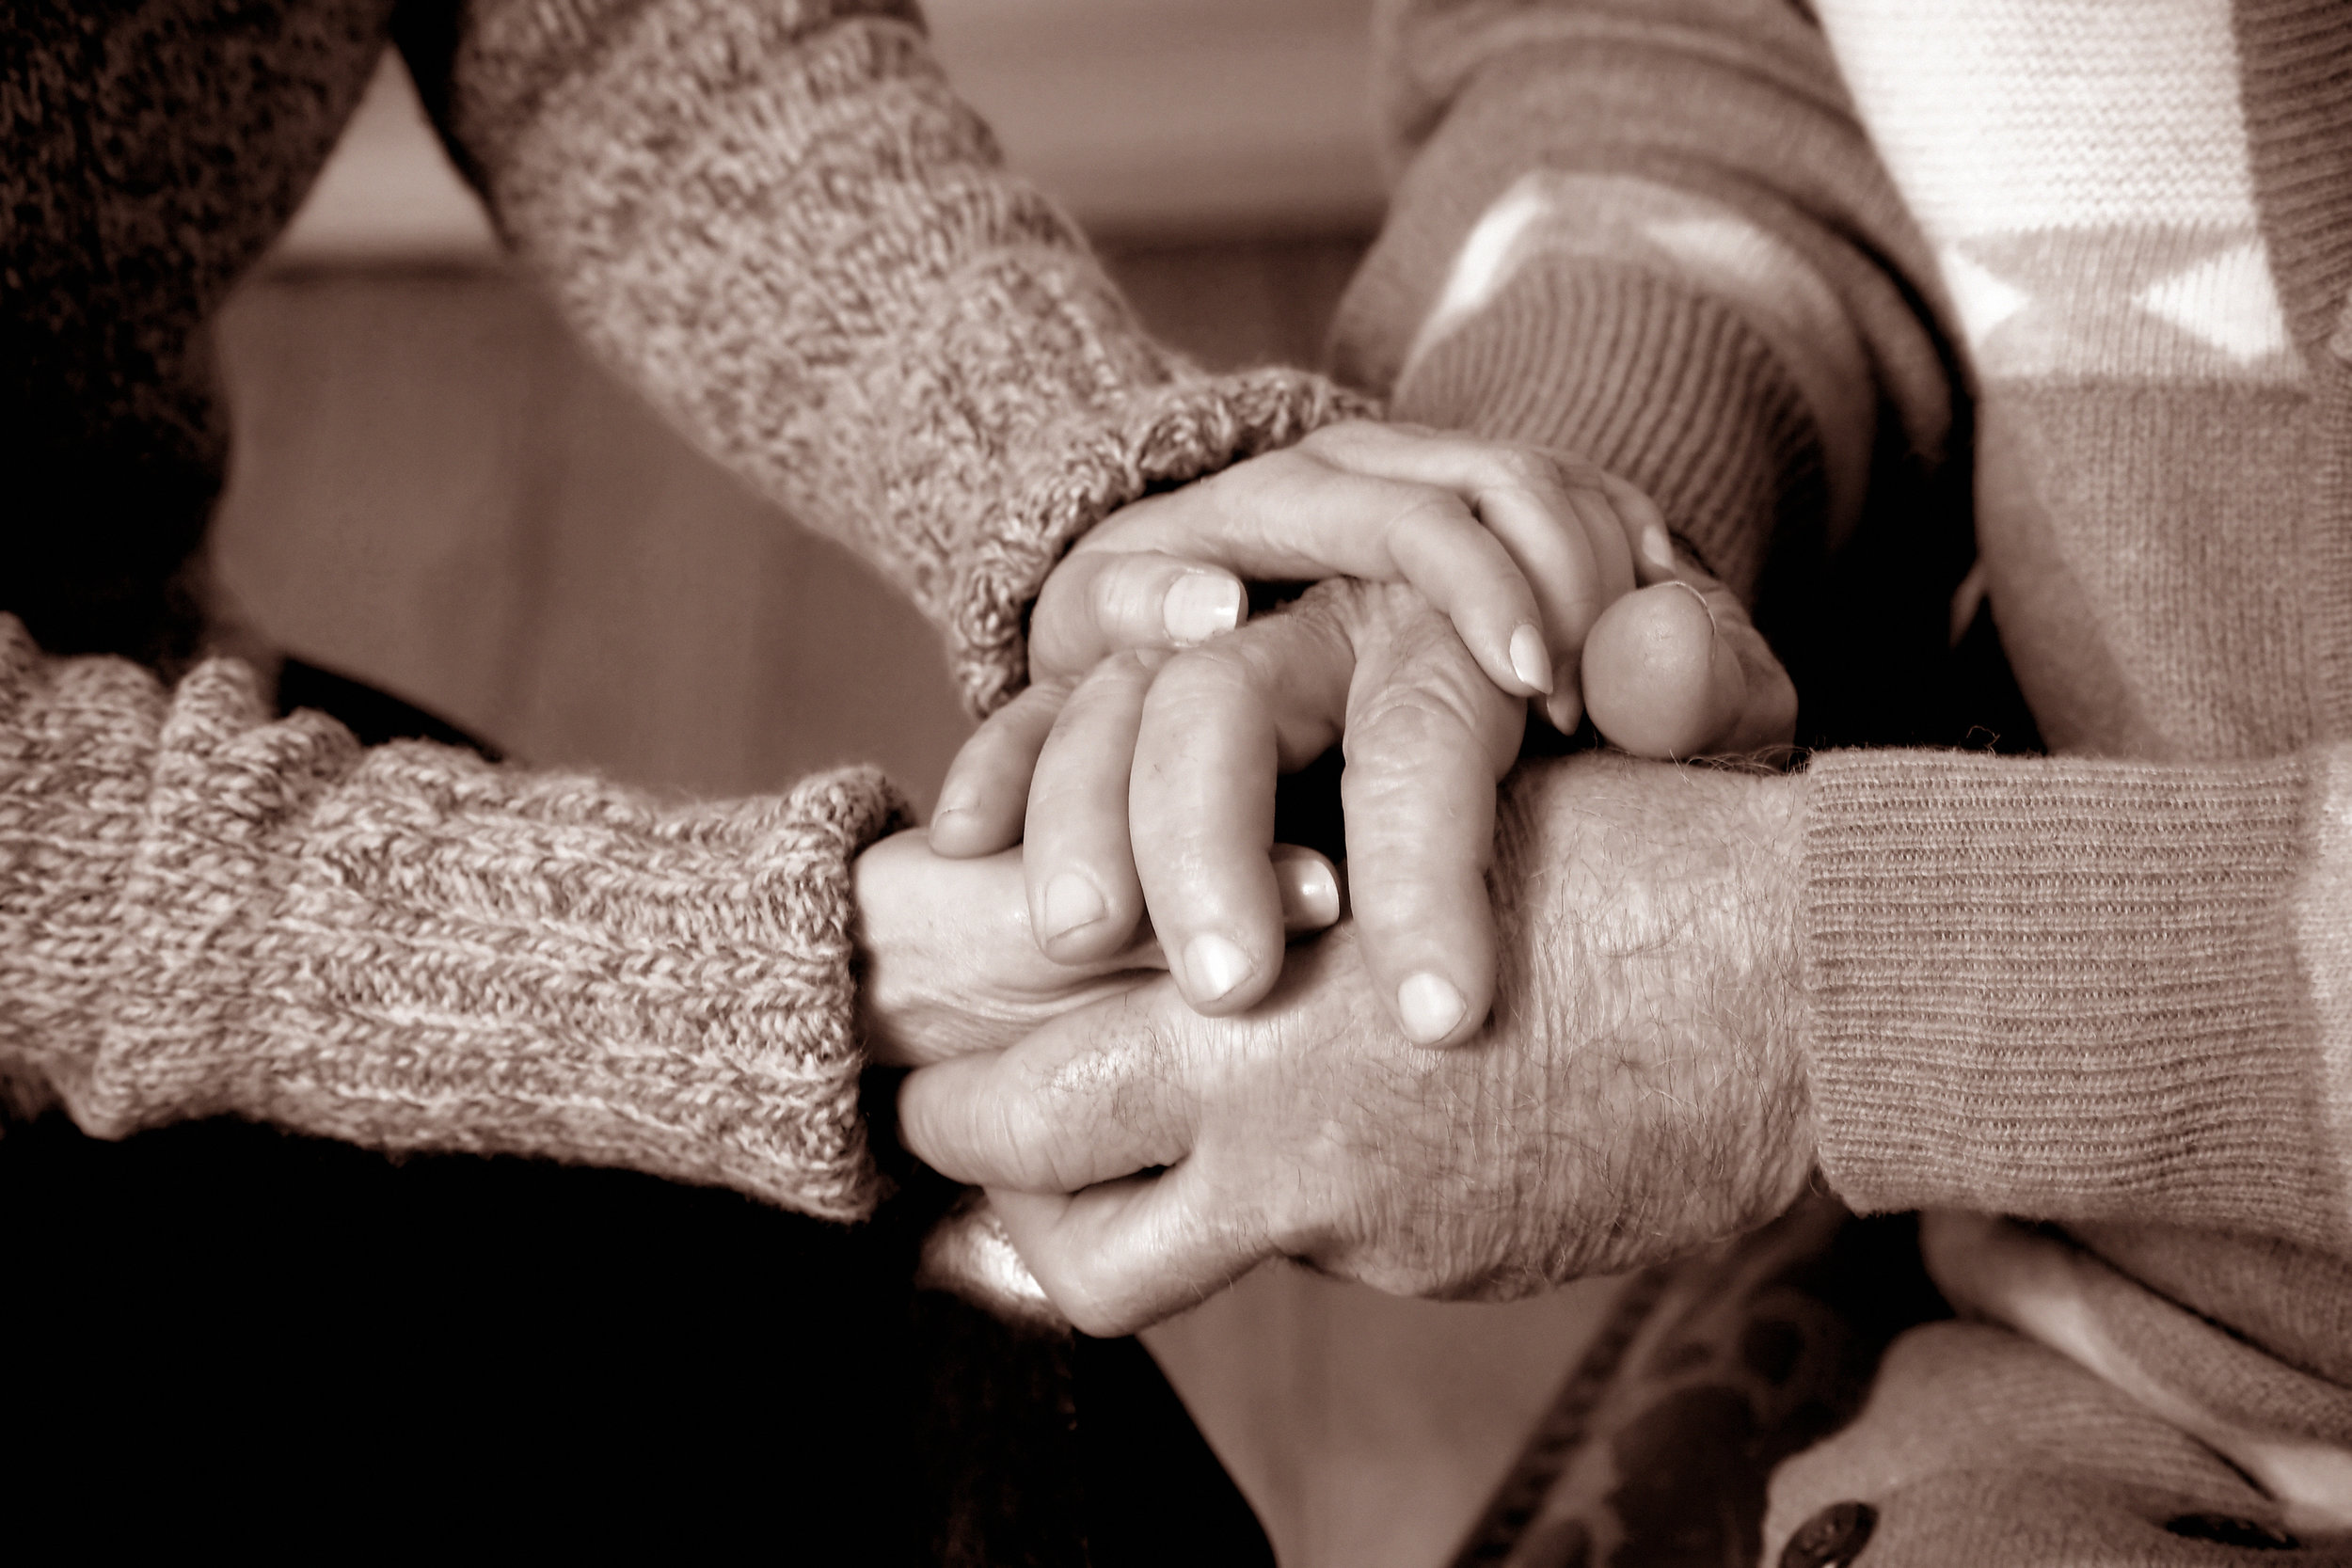 going through a hardship? We care! - Financial assistance is available for qualified Illinois Masons, their Spouses or Widows who experience unforeseeable and undue hardships.